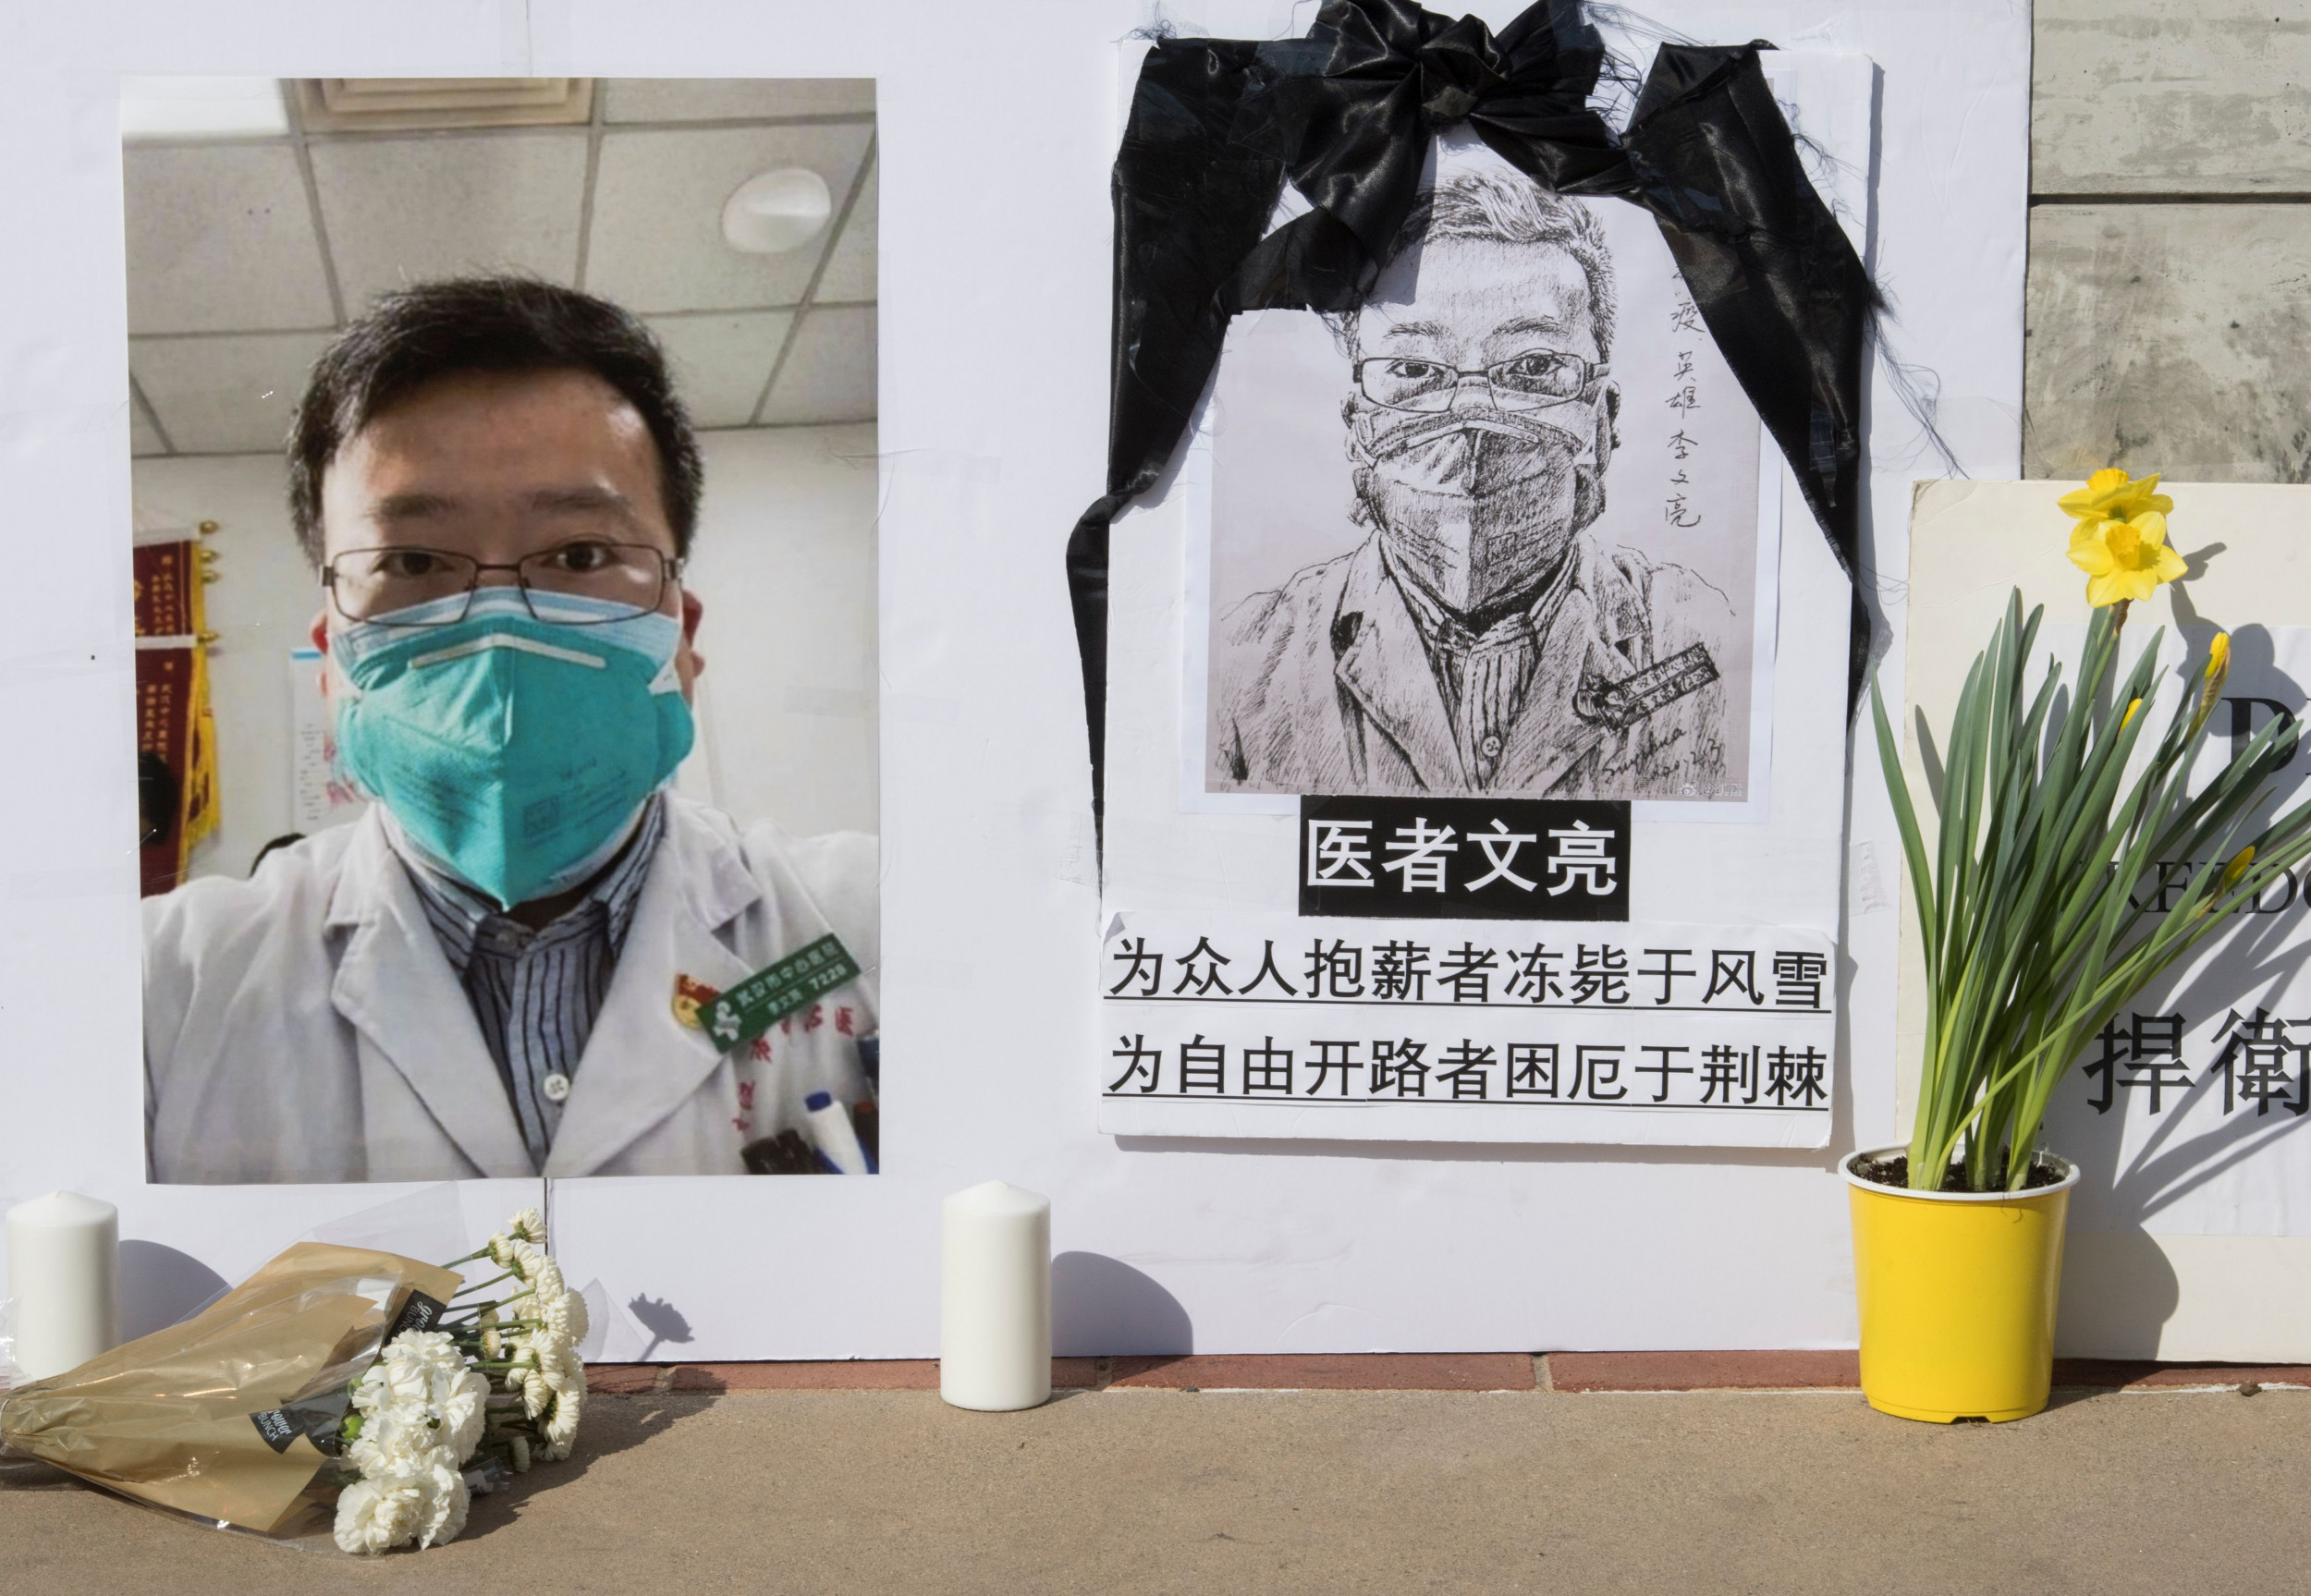 Over 100 Doctors and Nurses Have Died Combating Coronavirus Across the World